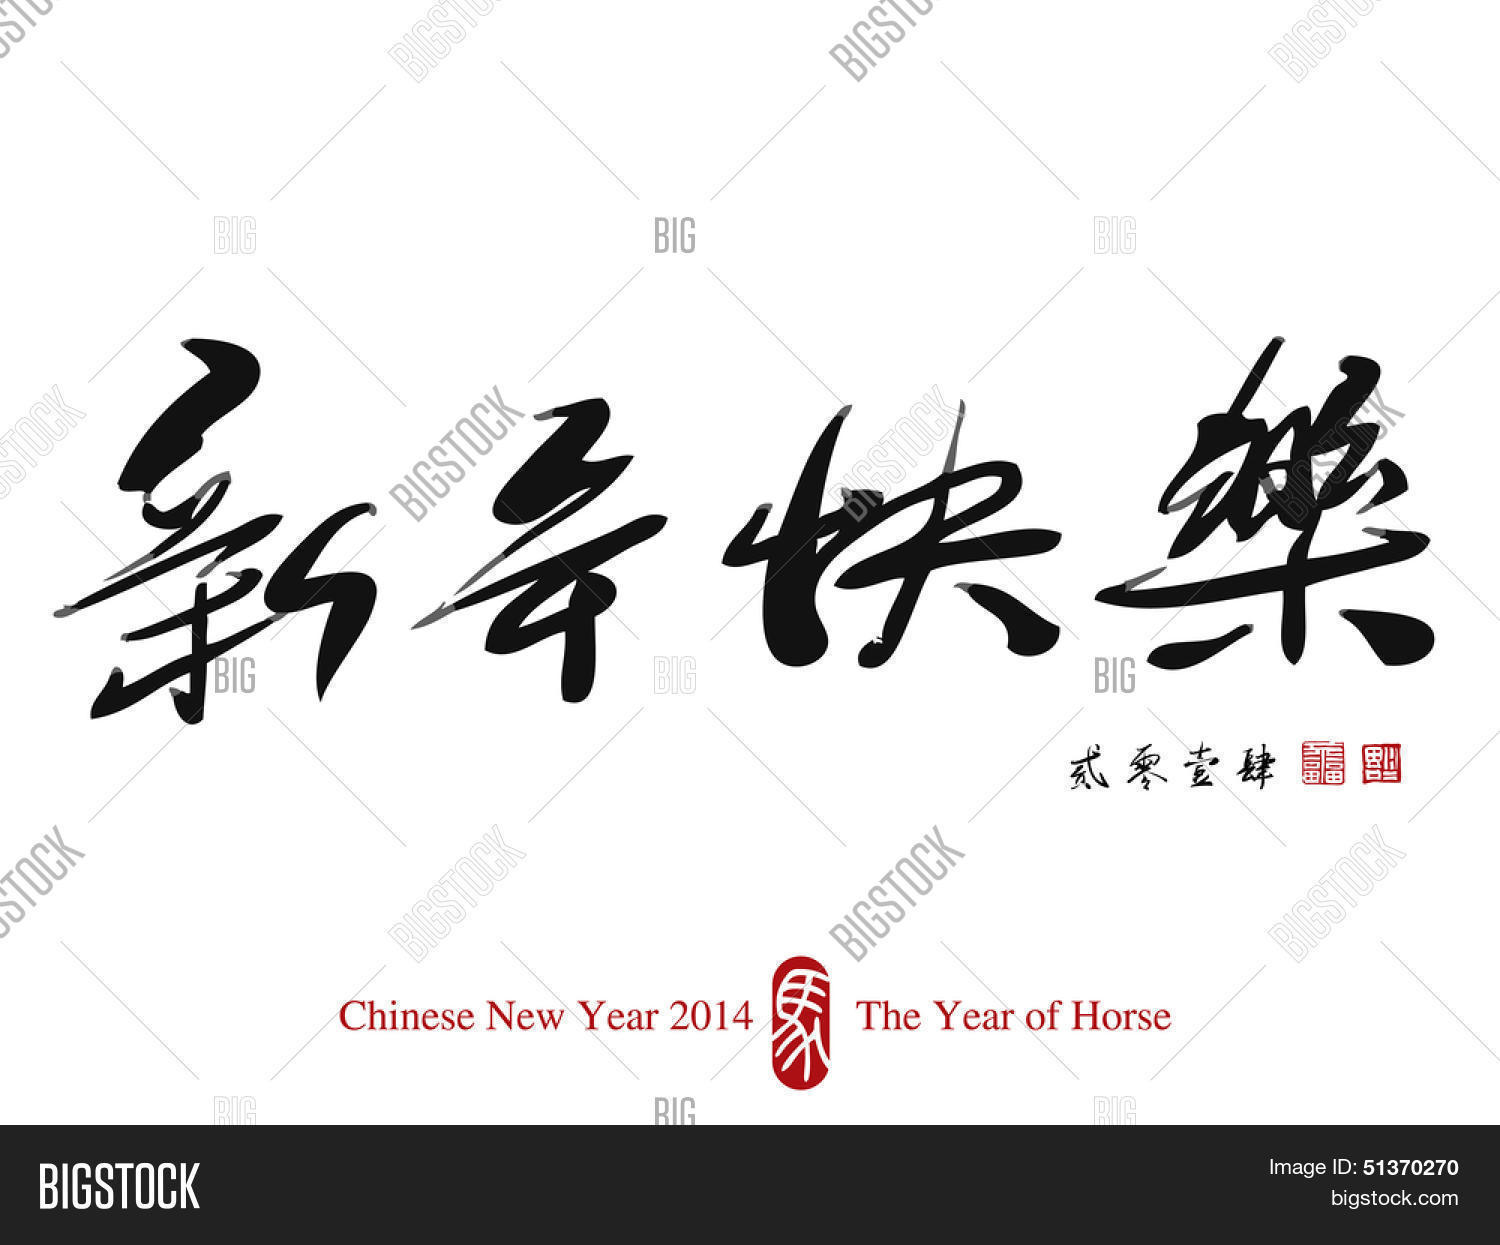 Chinese new year calligraphy 2014 vector photo bigstock chinese new year calligraphy 2014 translation happy chinese new year kristyandbryce Choice Image